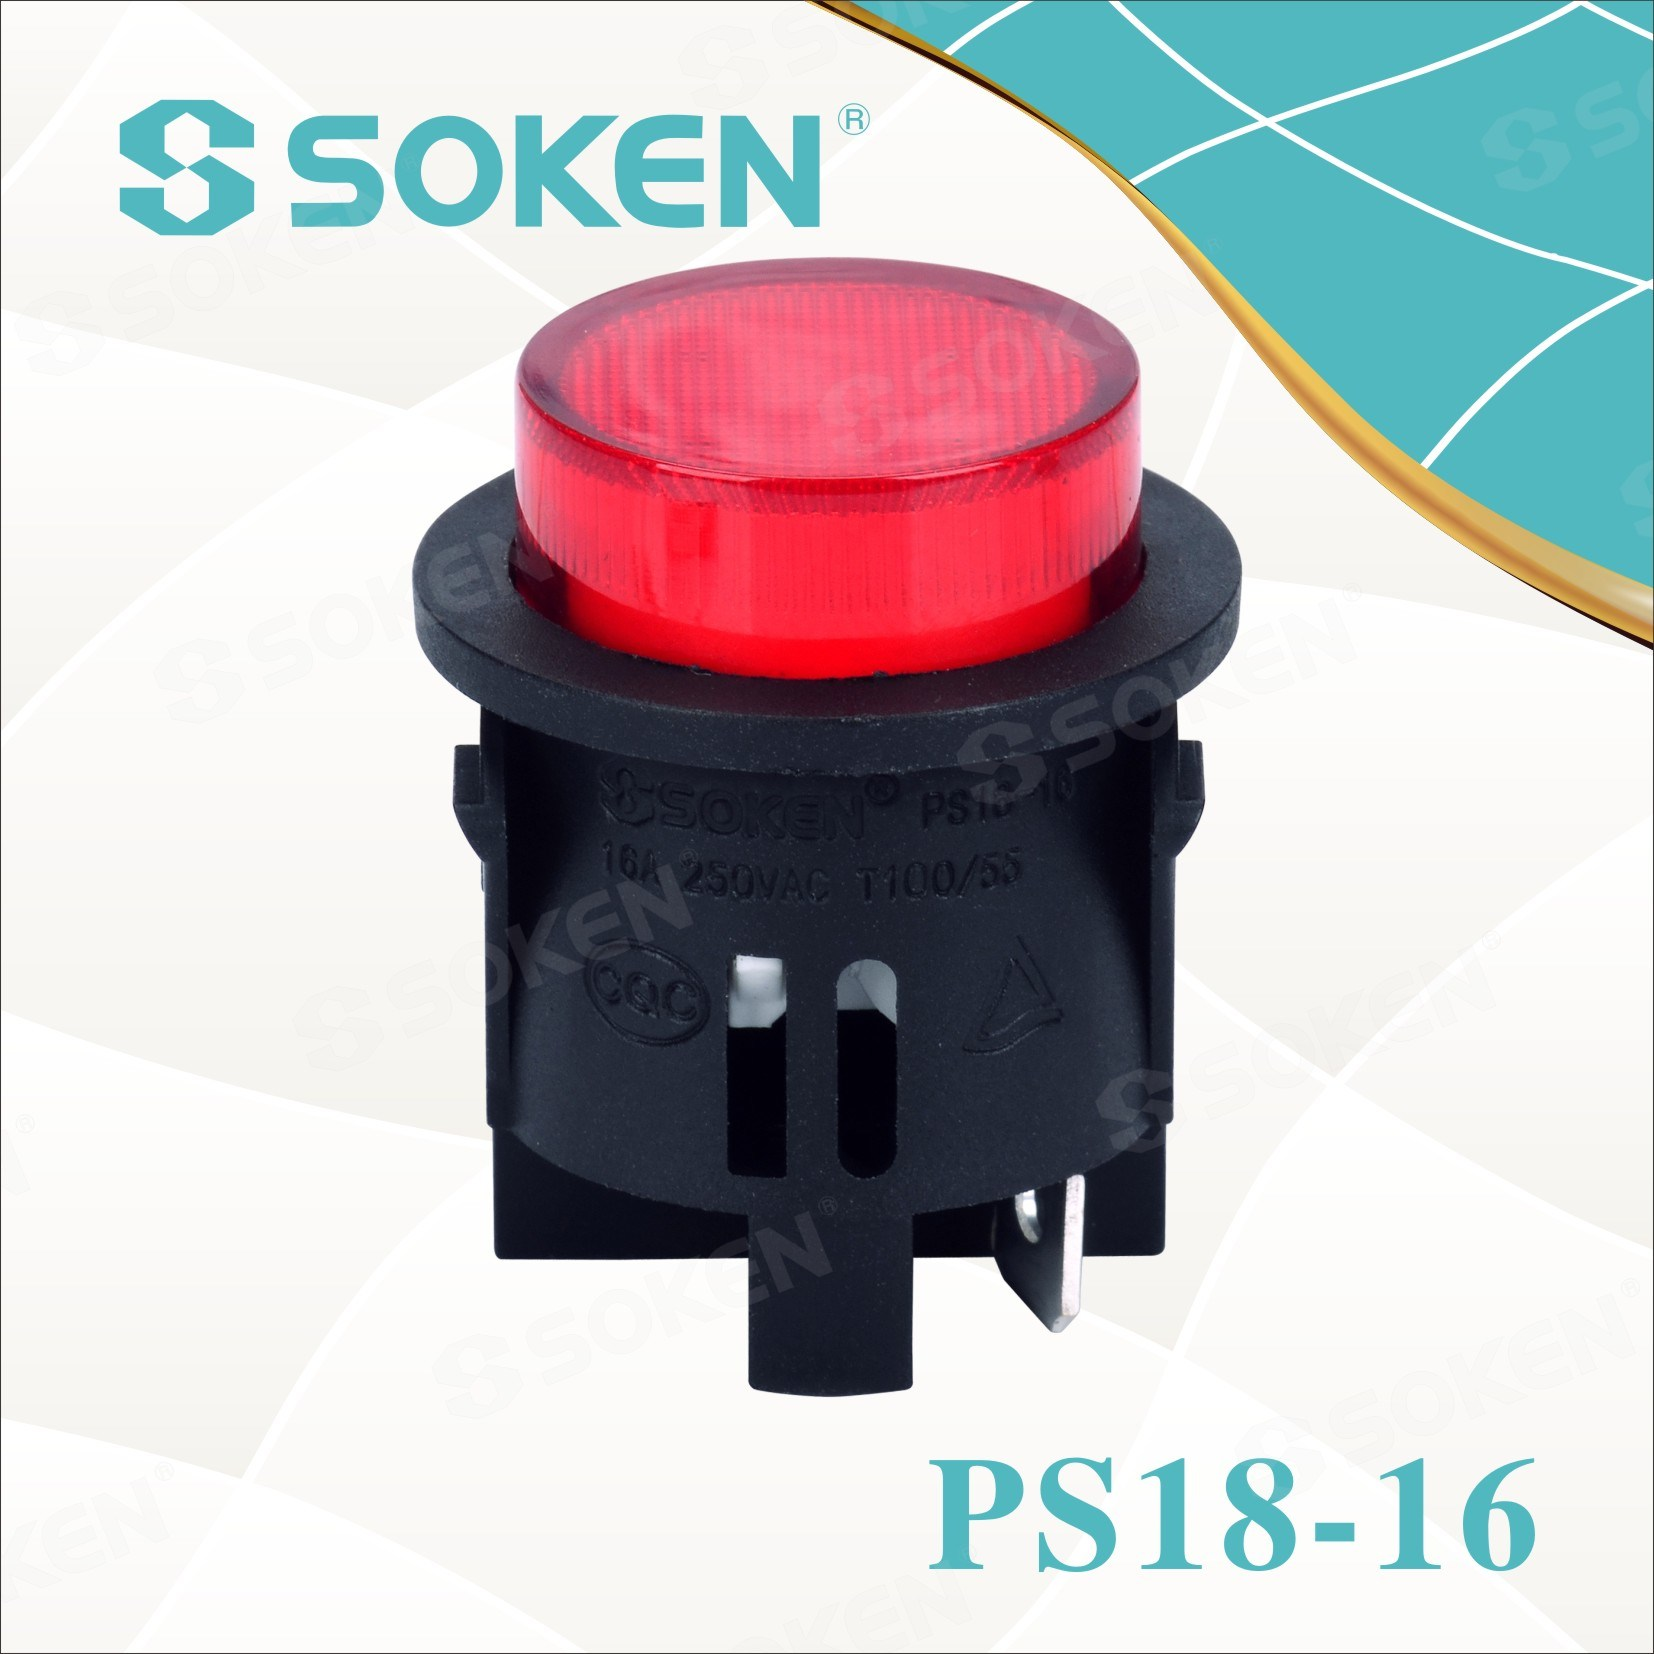 Ka murugeeysan dib Light Round Button Switch 1 Pole